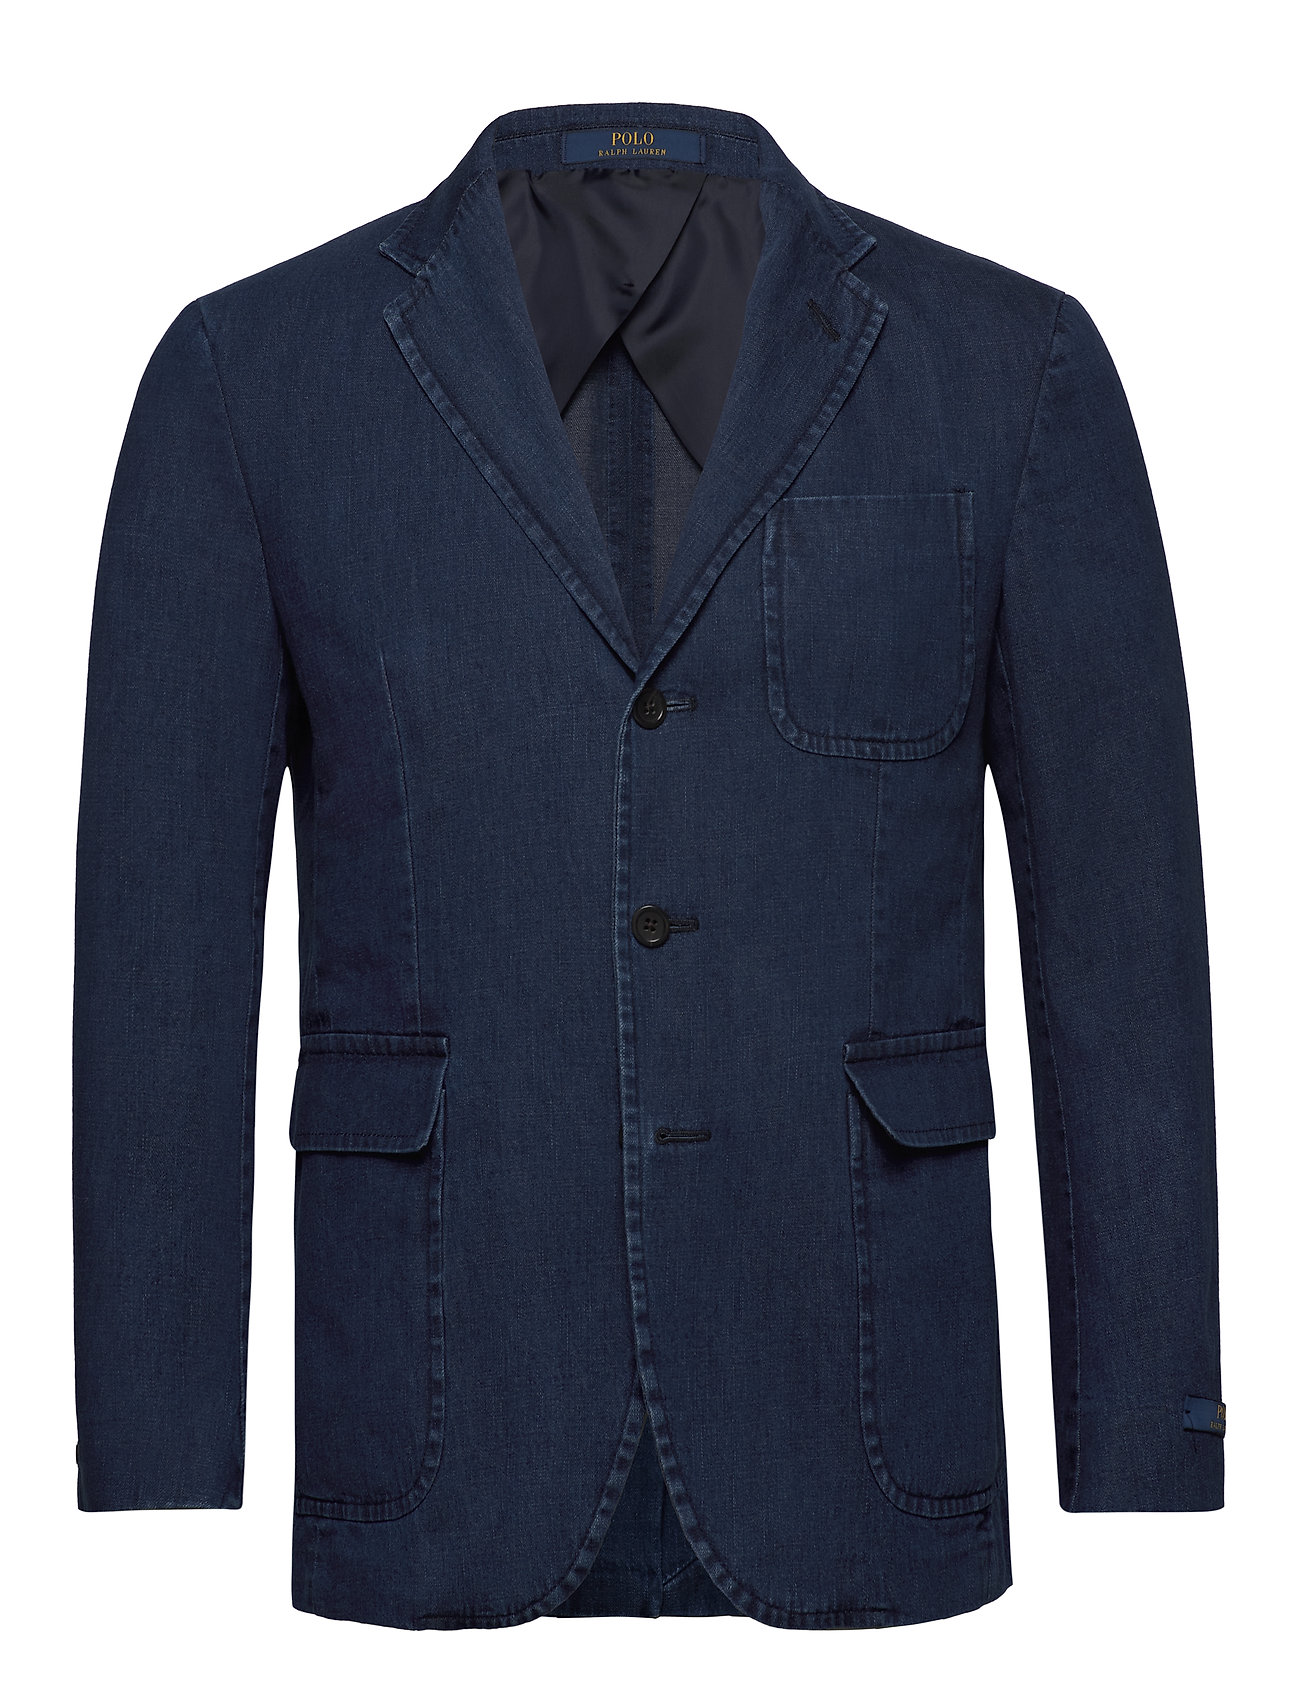 Polo Ralph Lauren Polo Soft Denim Sport Coat - INDIGO